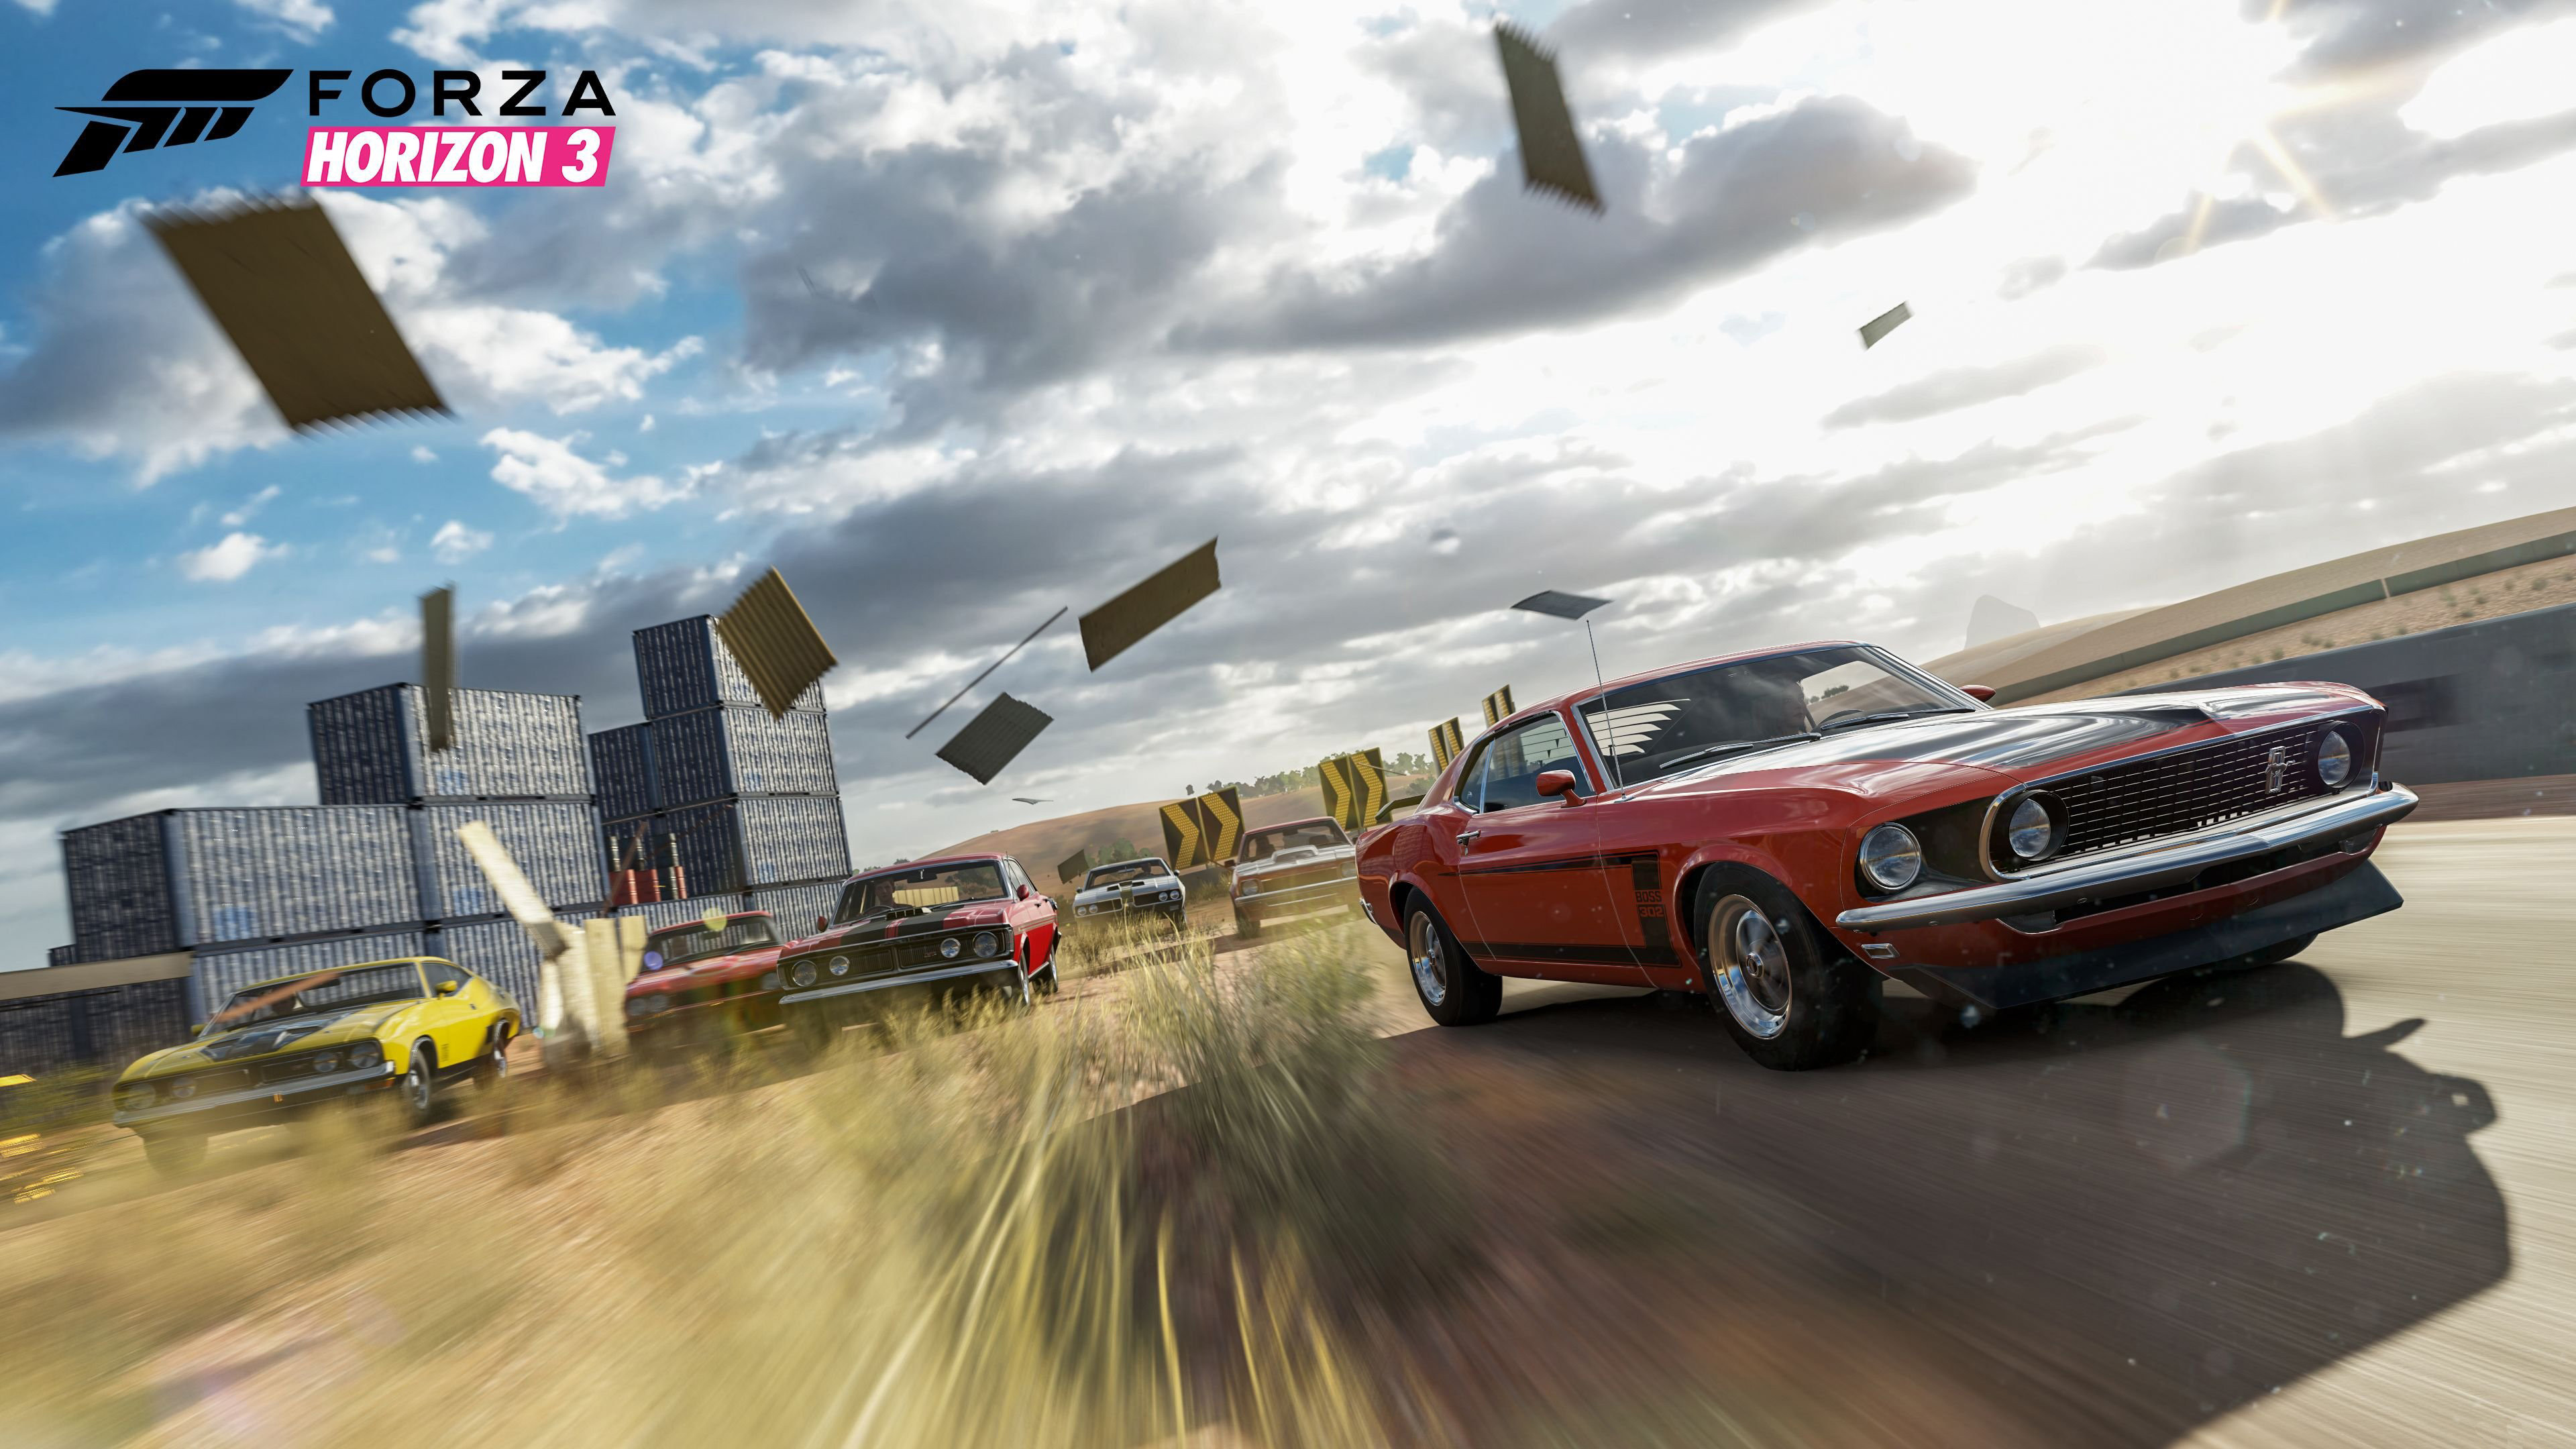 480x854 Forza Horizon 3 Classic Car Android One HD 4k